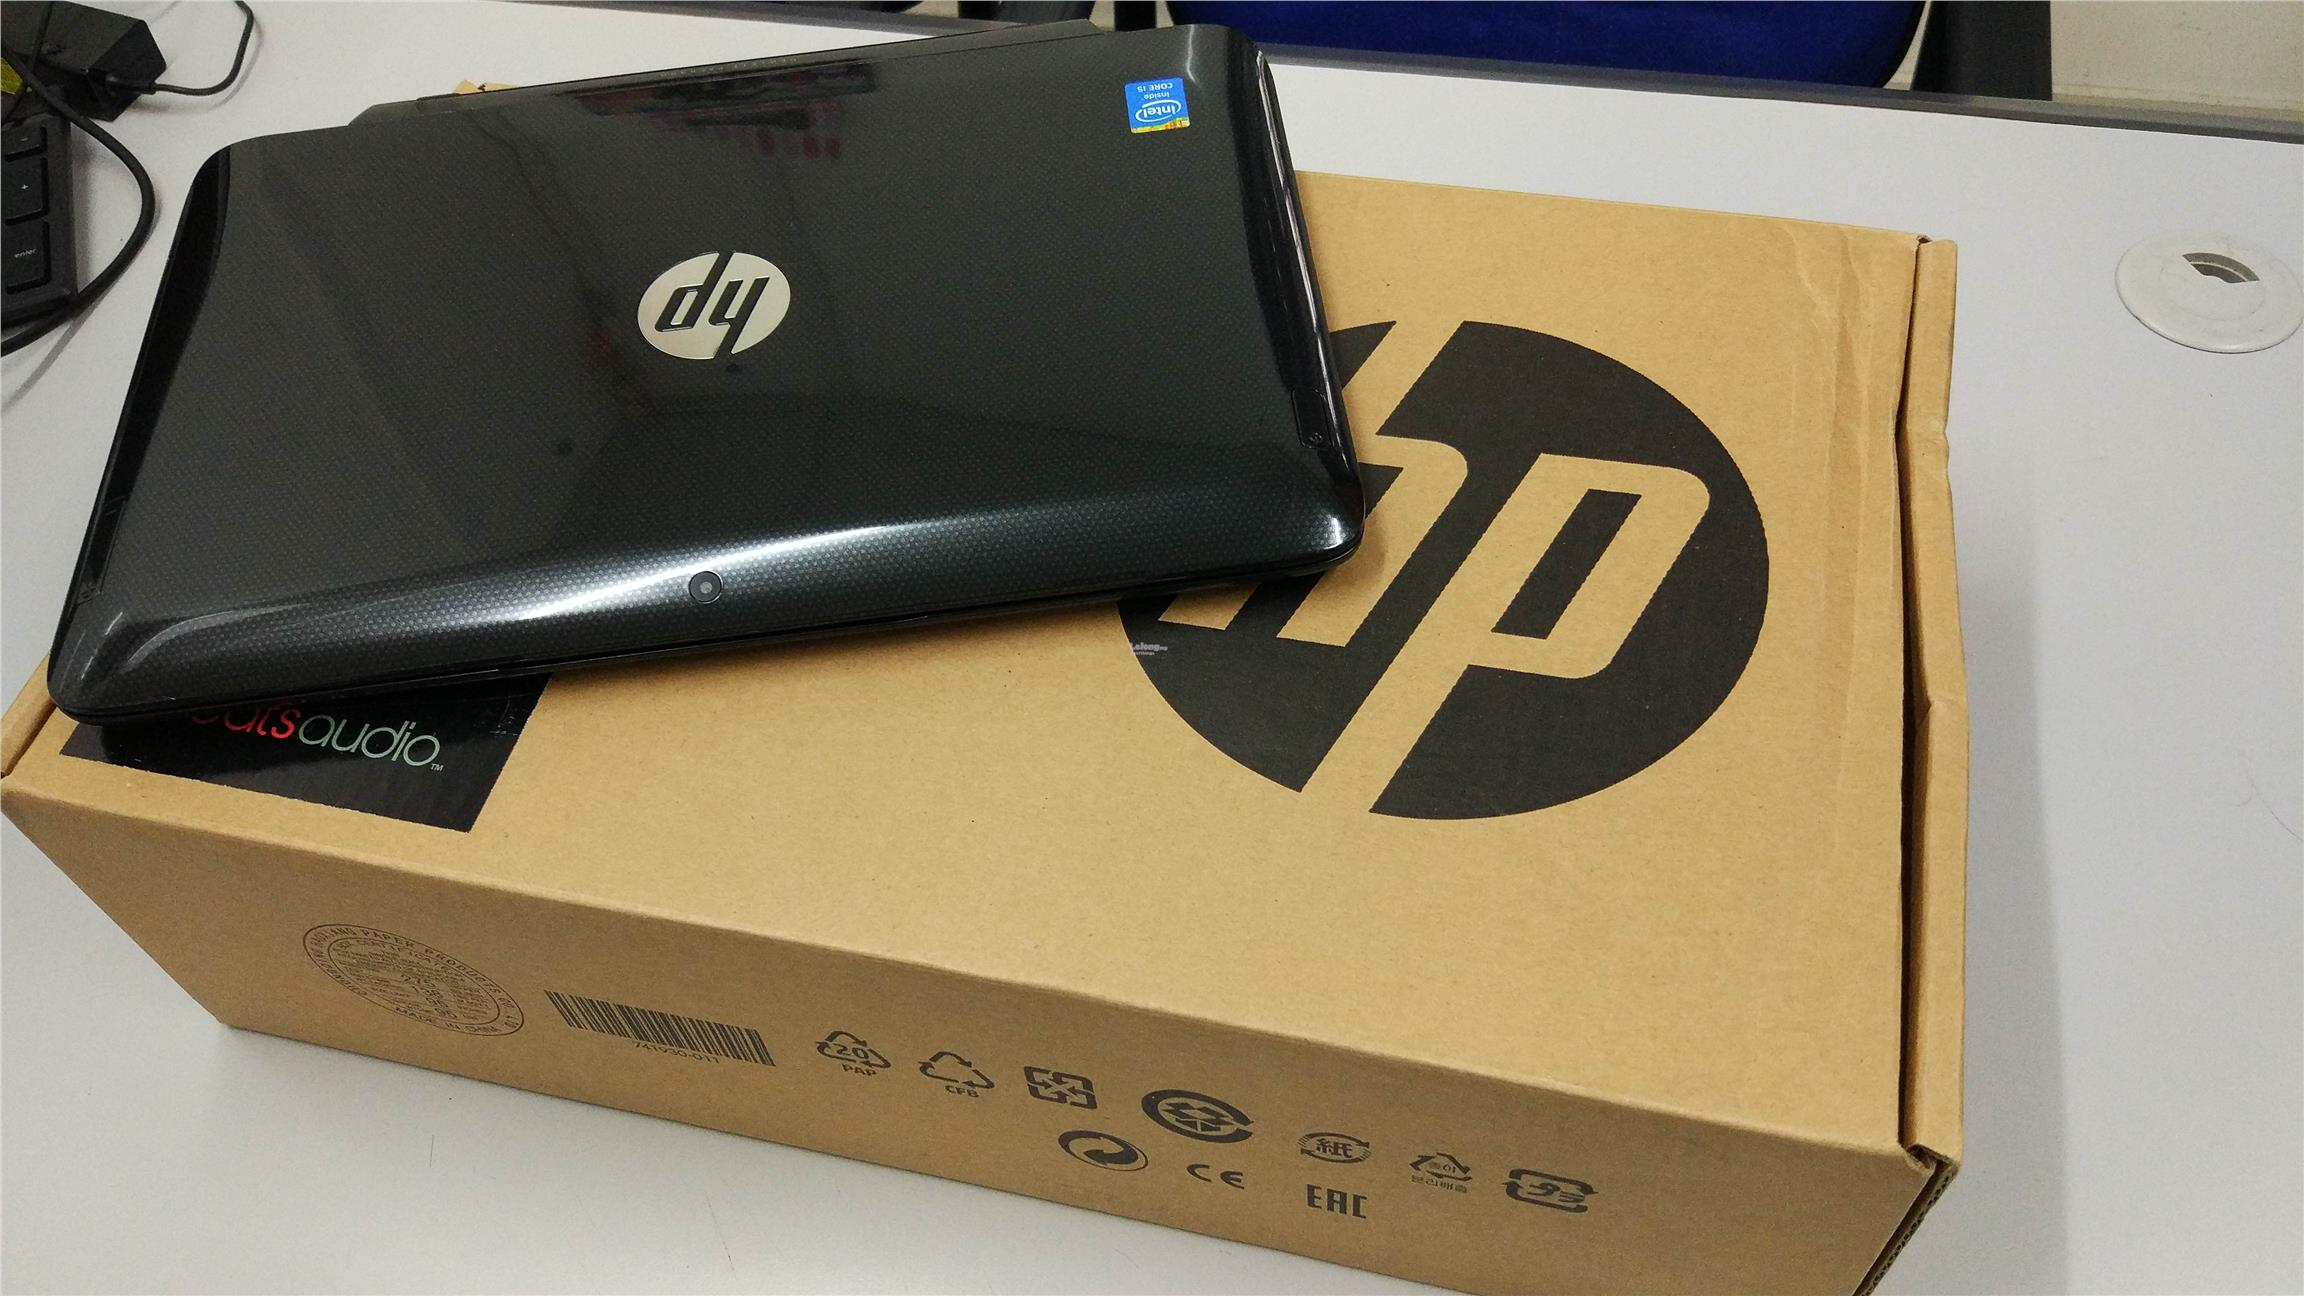 HP PAVILION 11 X2 11.6 Touch Screen i5 4GB 128SSD 2in1